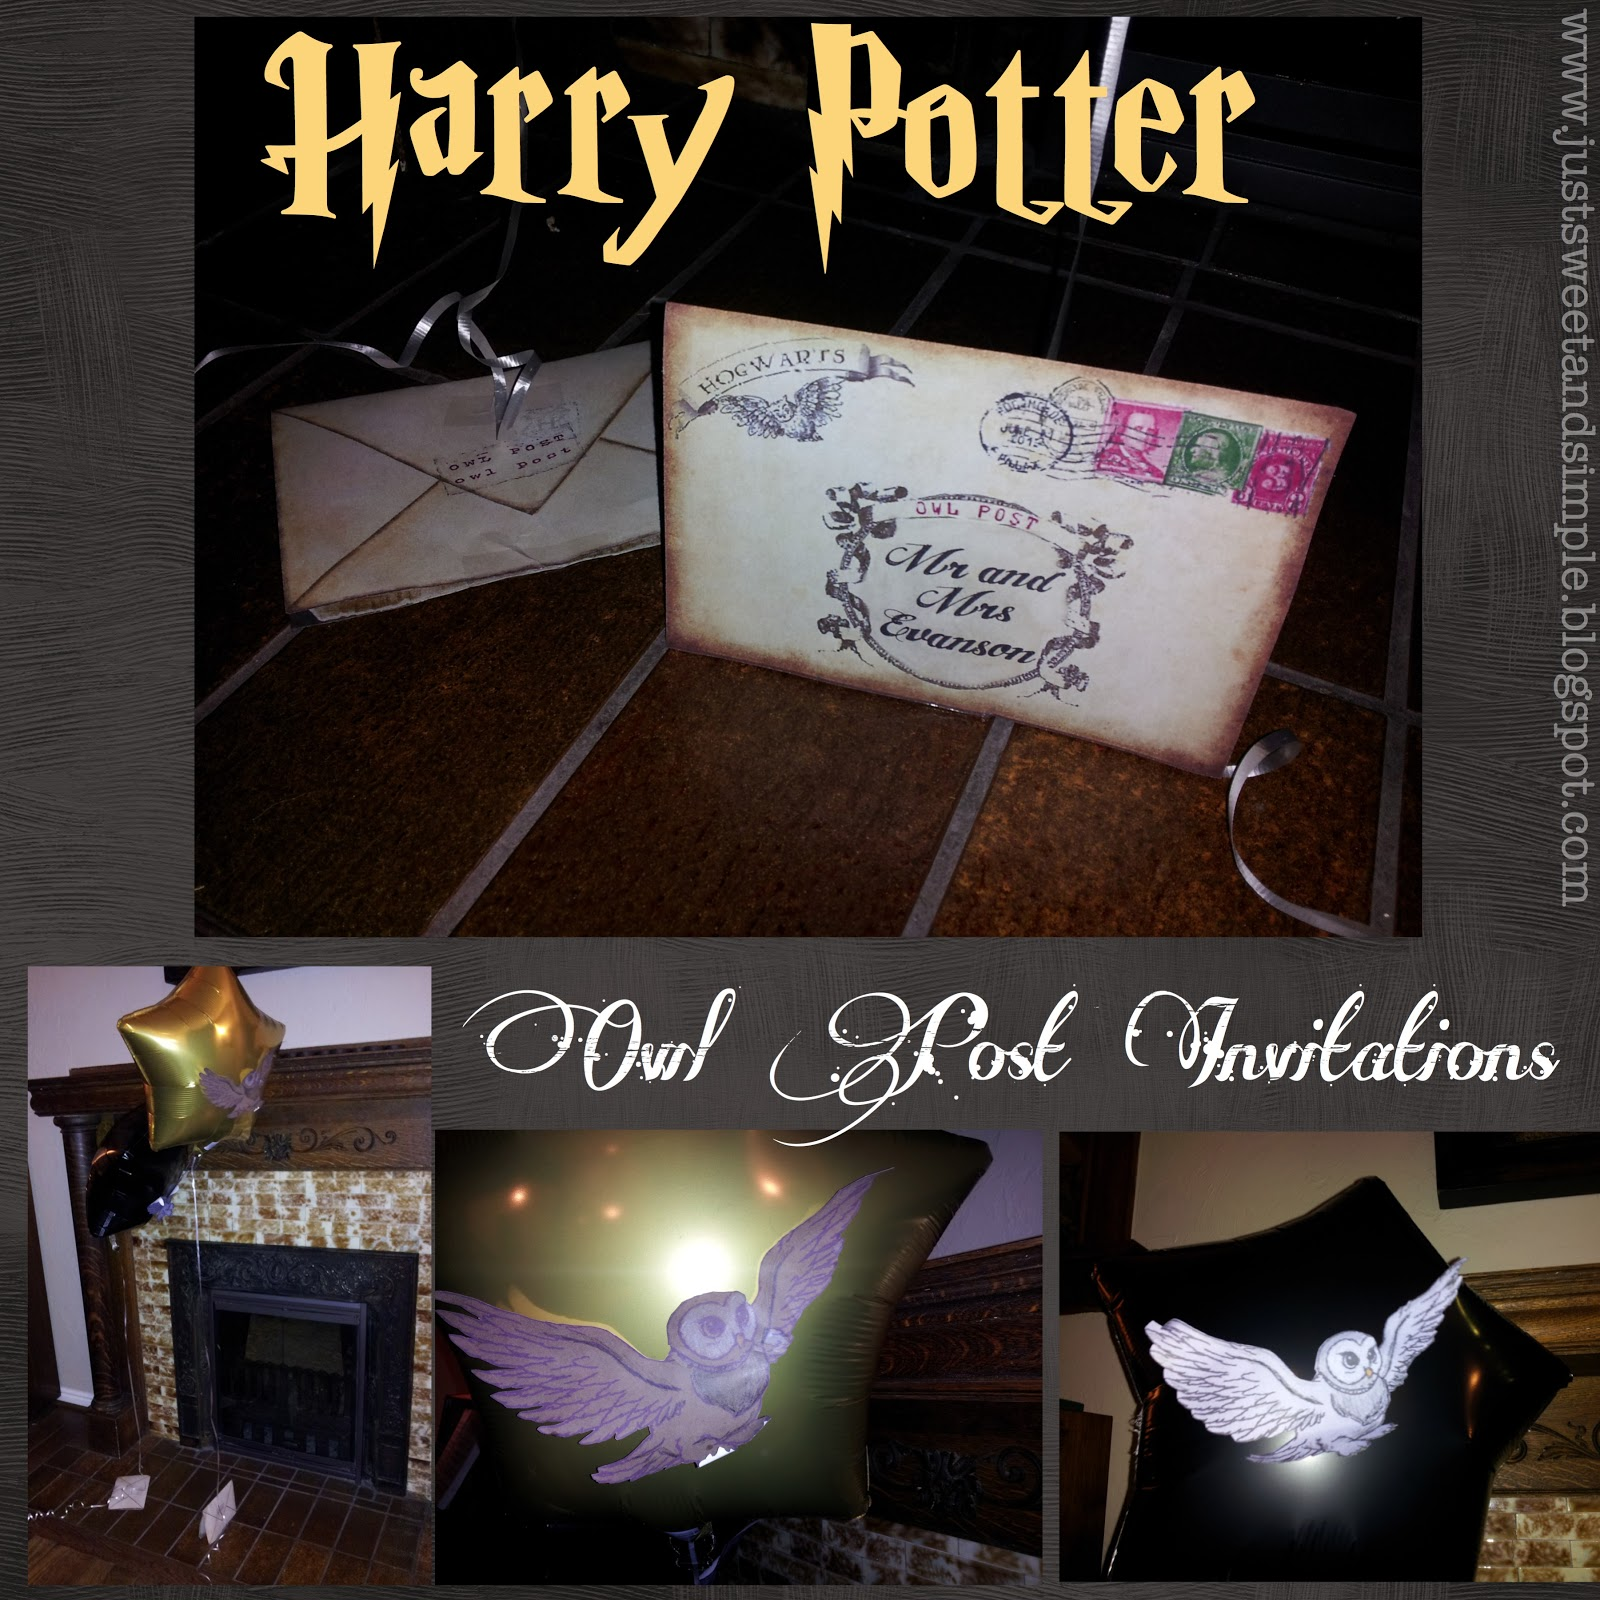 photograph relating to Hogwarts Express Ticket Printable identify precisely Cute and Uncomplicated: November 2012